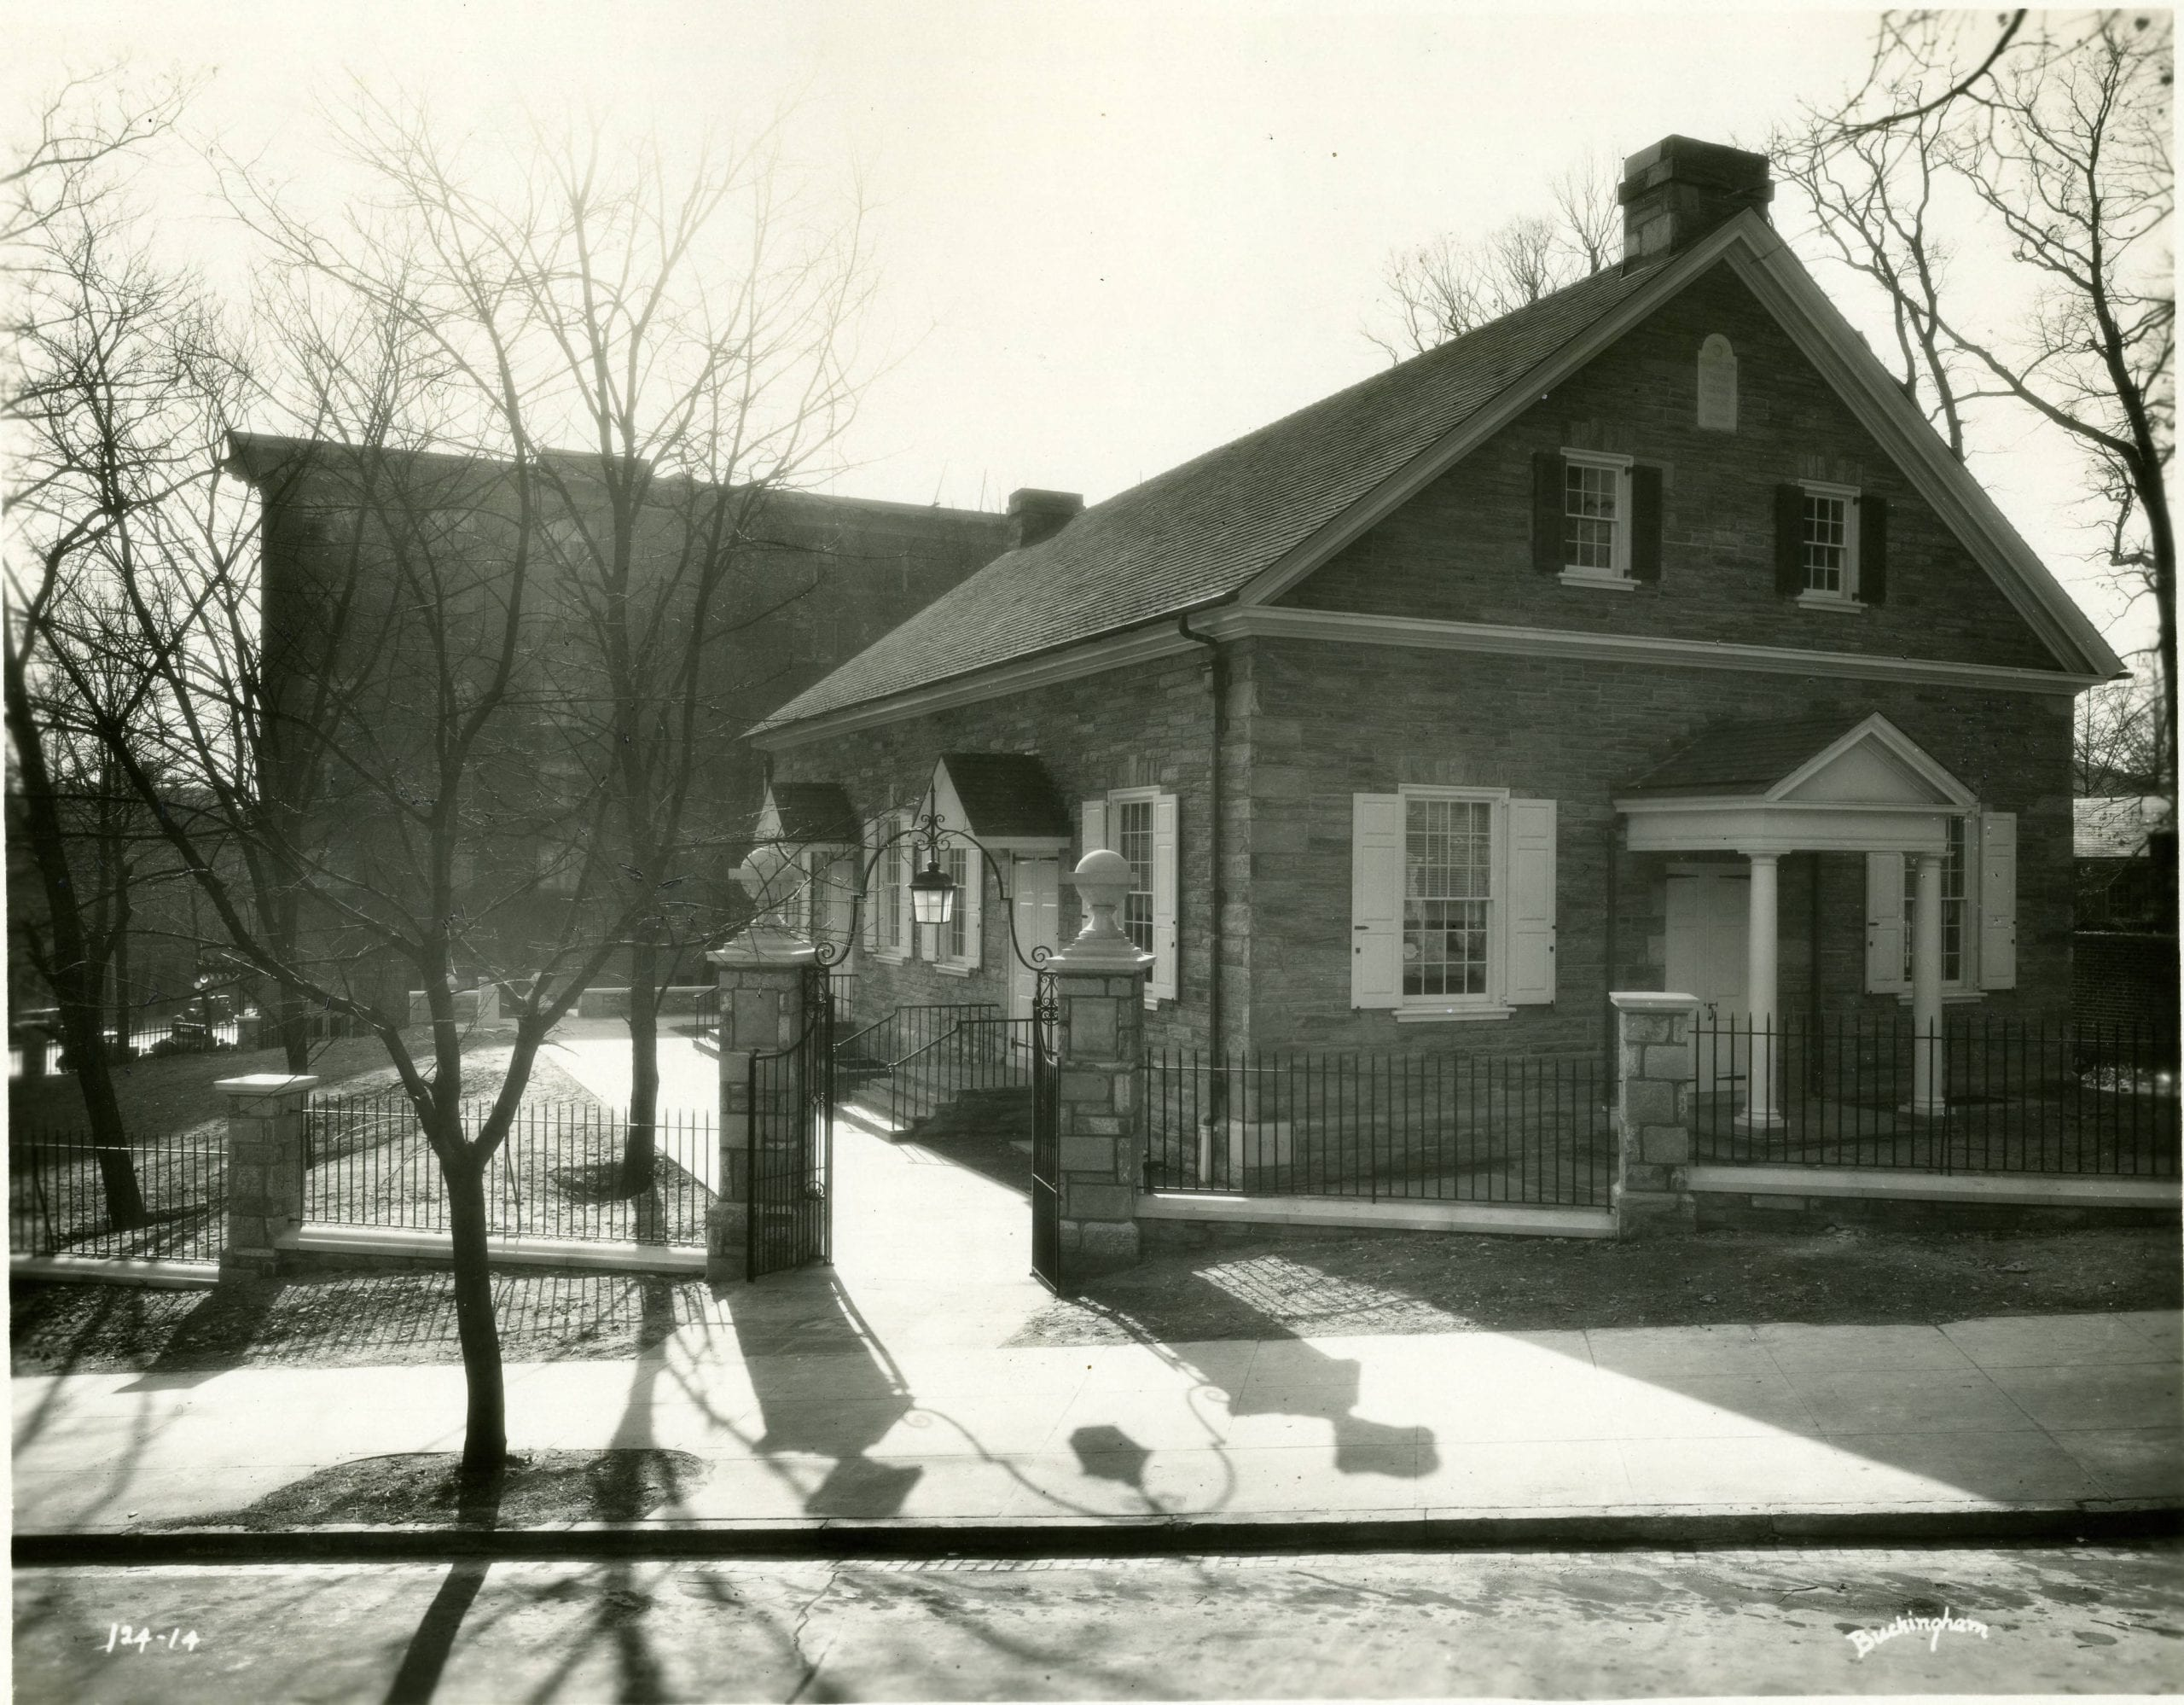 Florida Avenue Quaker Meeting House (Haverford College)